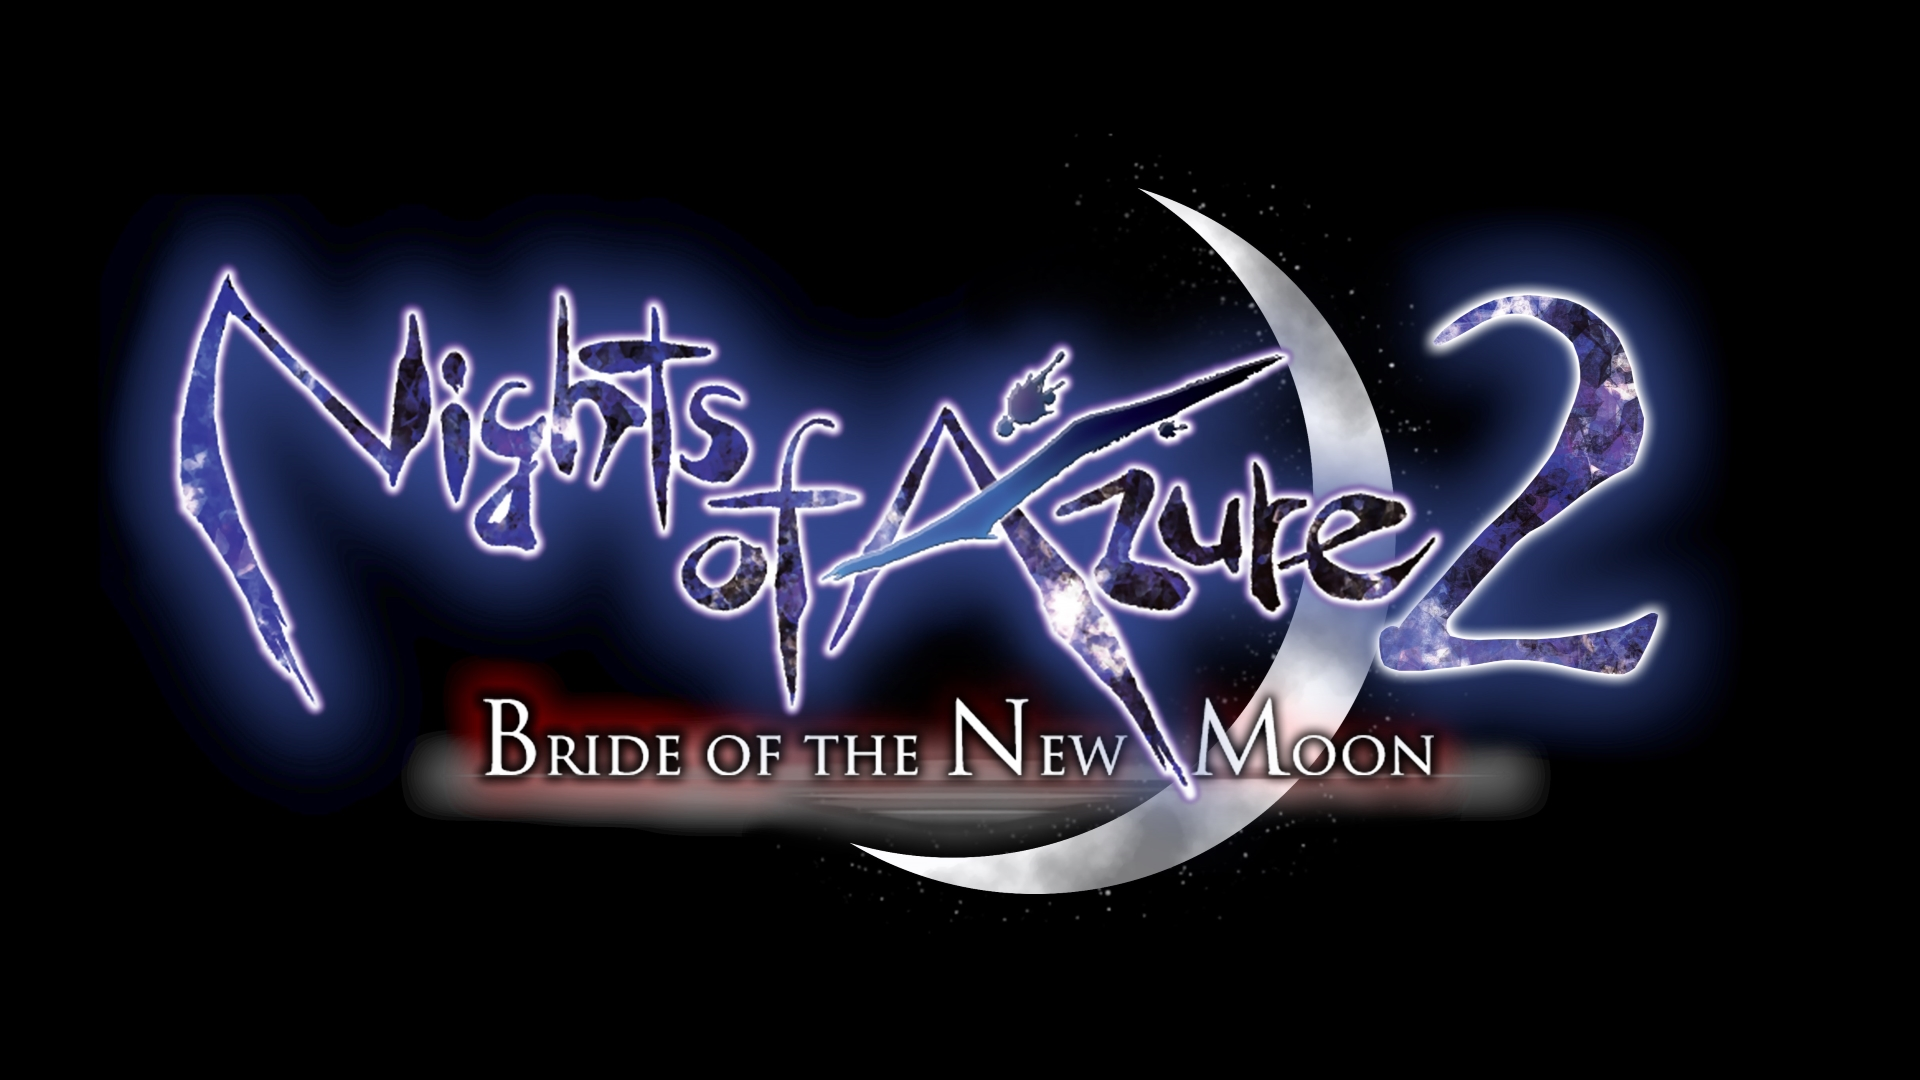 Nights Of Azure 2 Bride Of The New Moon Switch Review